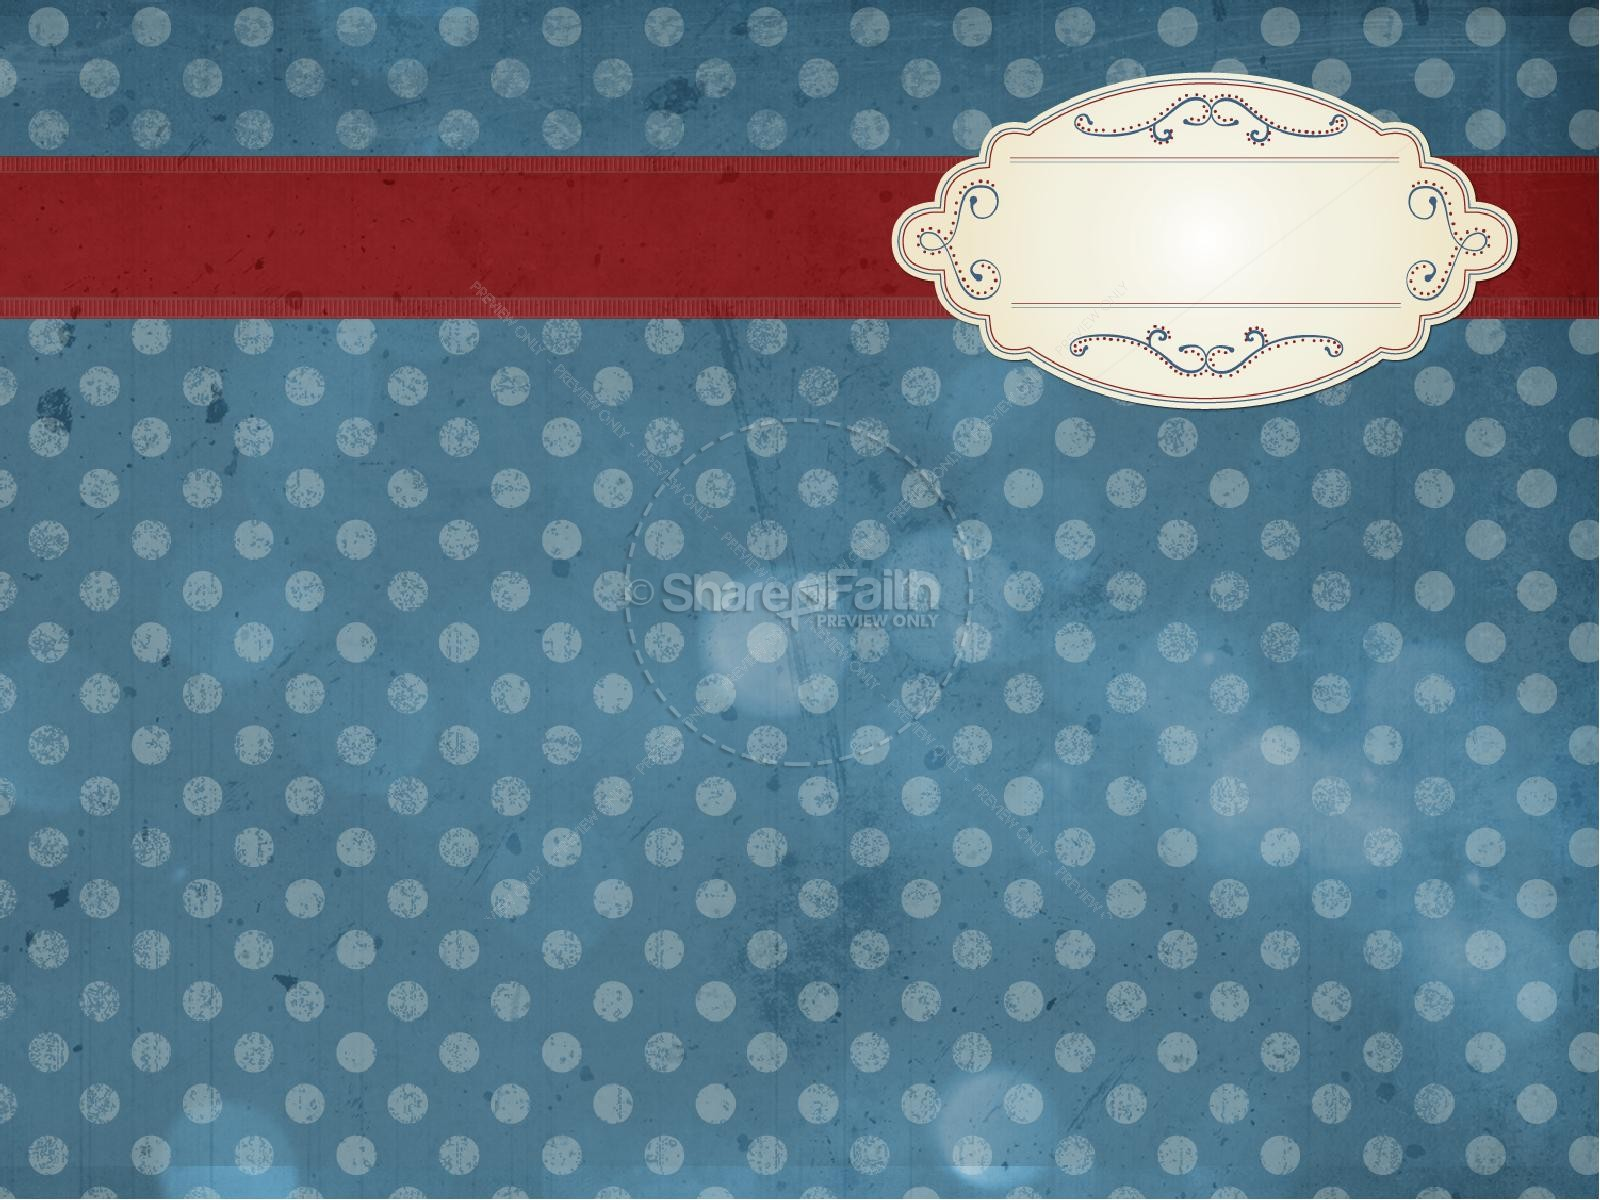 Merry Christmas PowerPoint Template for Church   slide 6